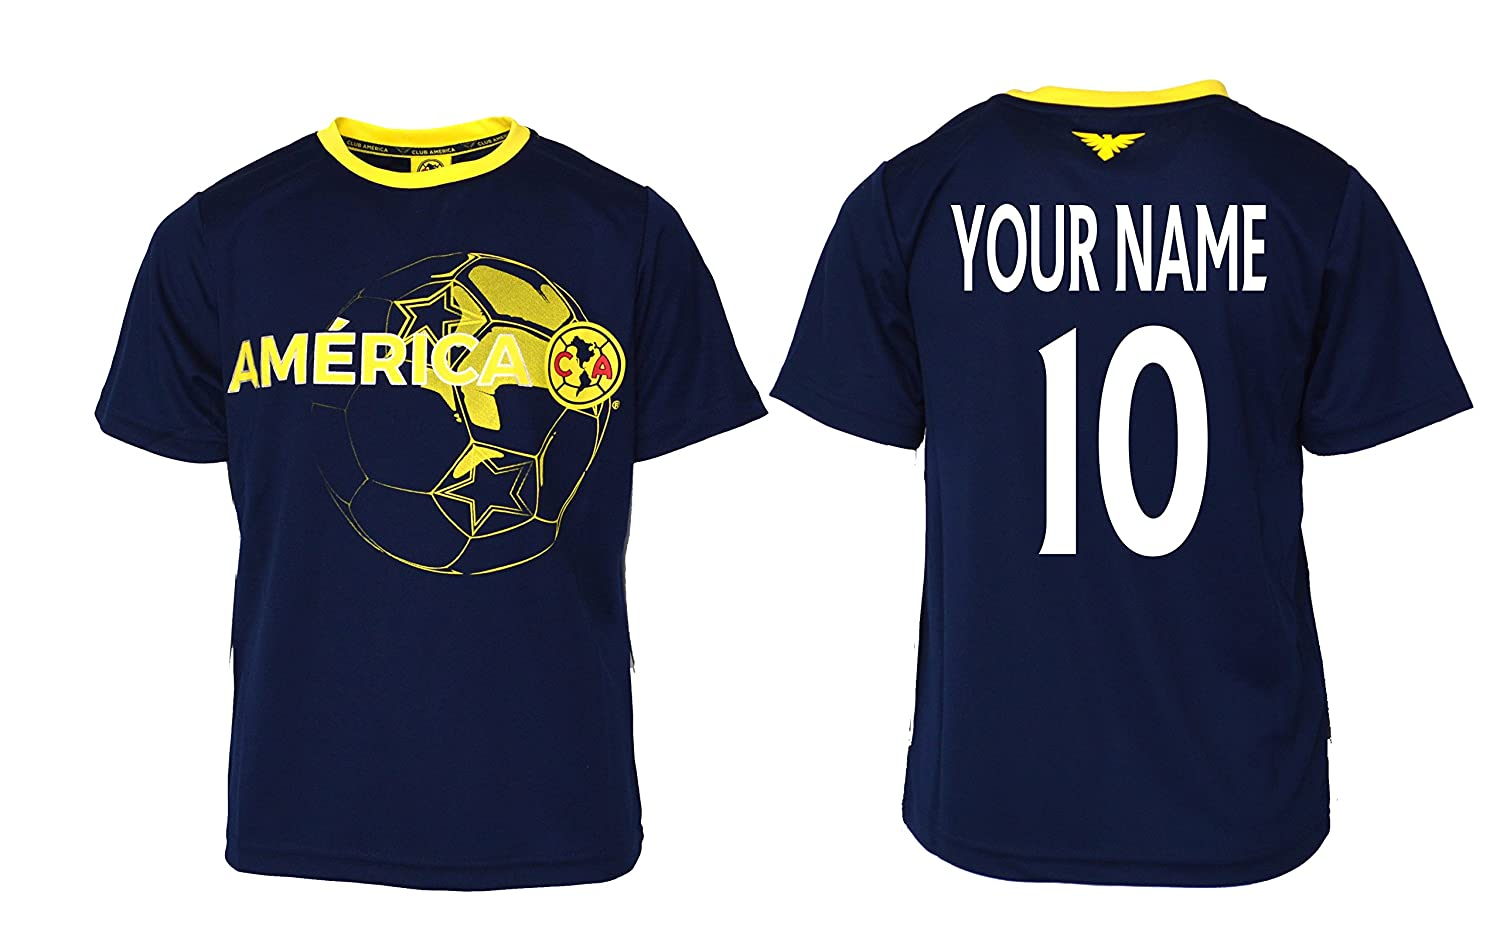 f2d80a74b44 Amazon.com   Club America Soccer Jersey Youth Boys Training Custom Name and  Number   Sports   Outdoors